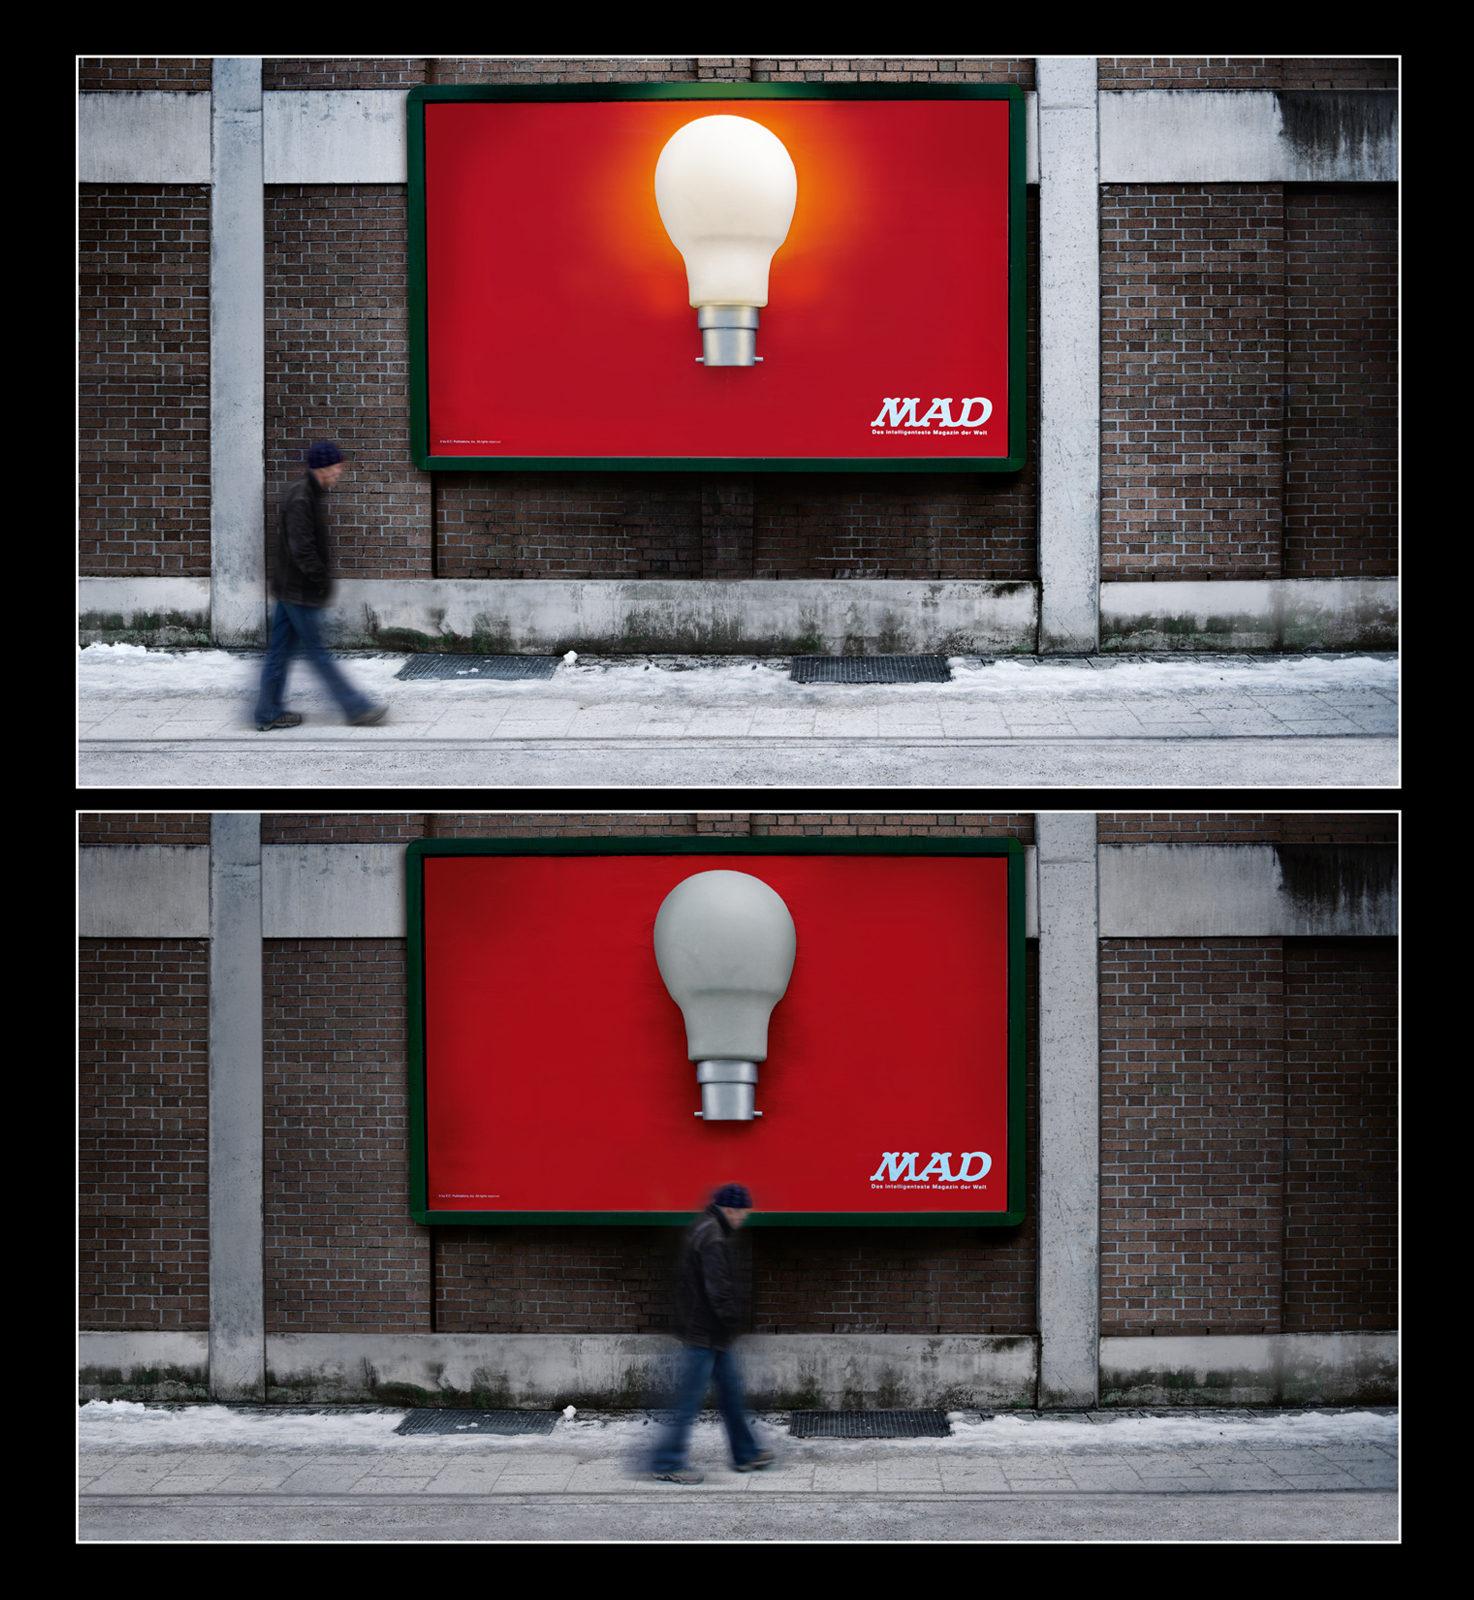 outdoor advertising and product placement